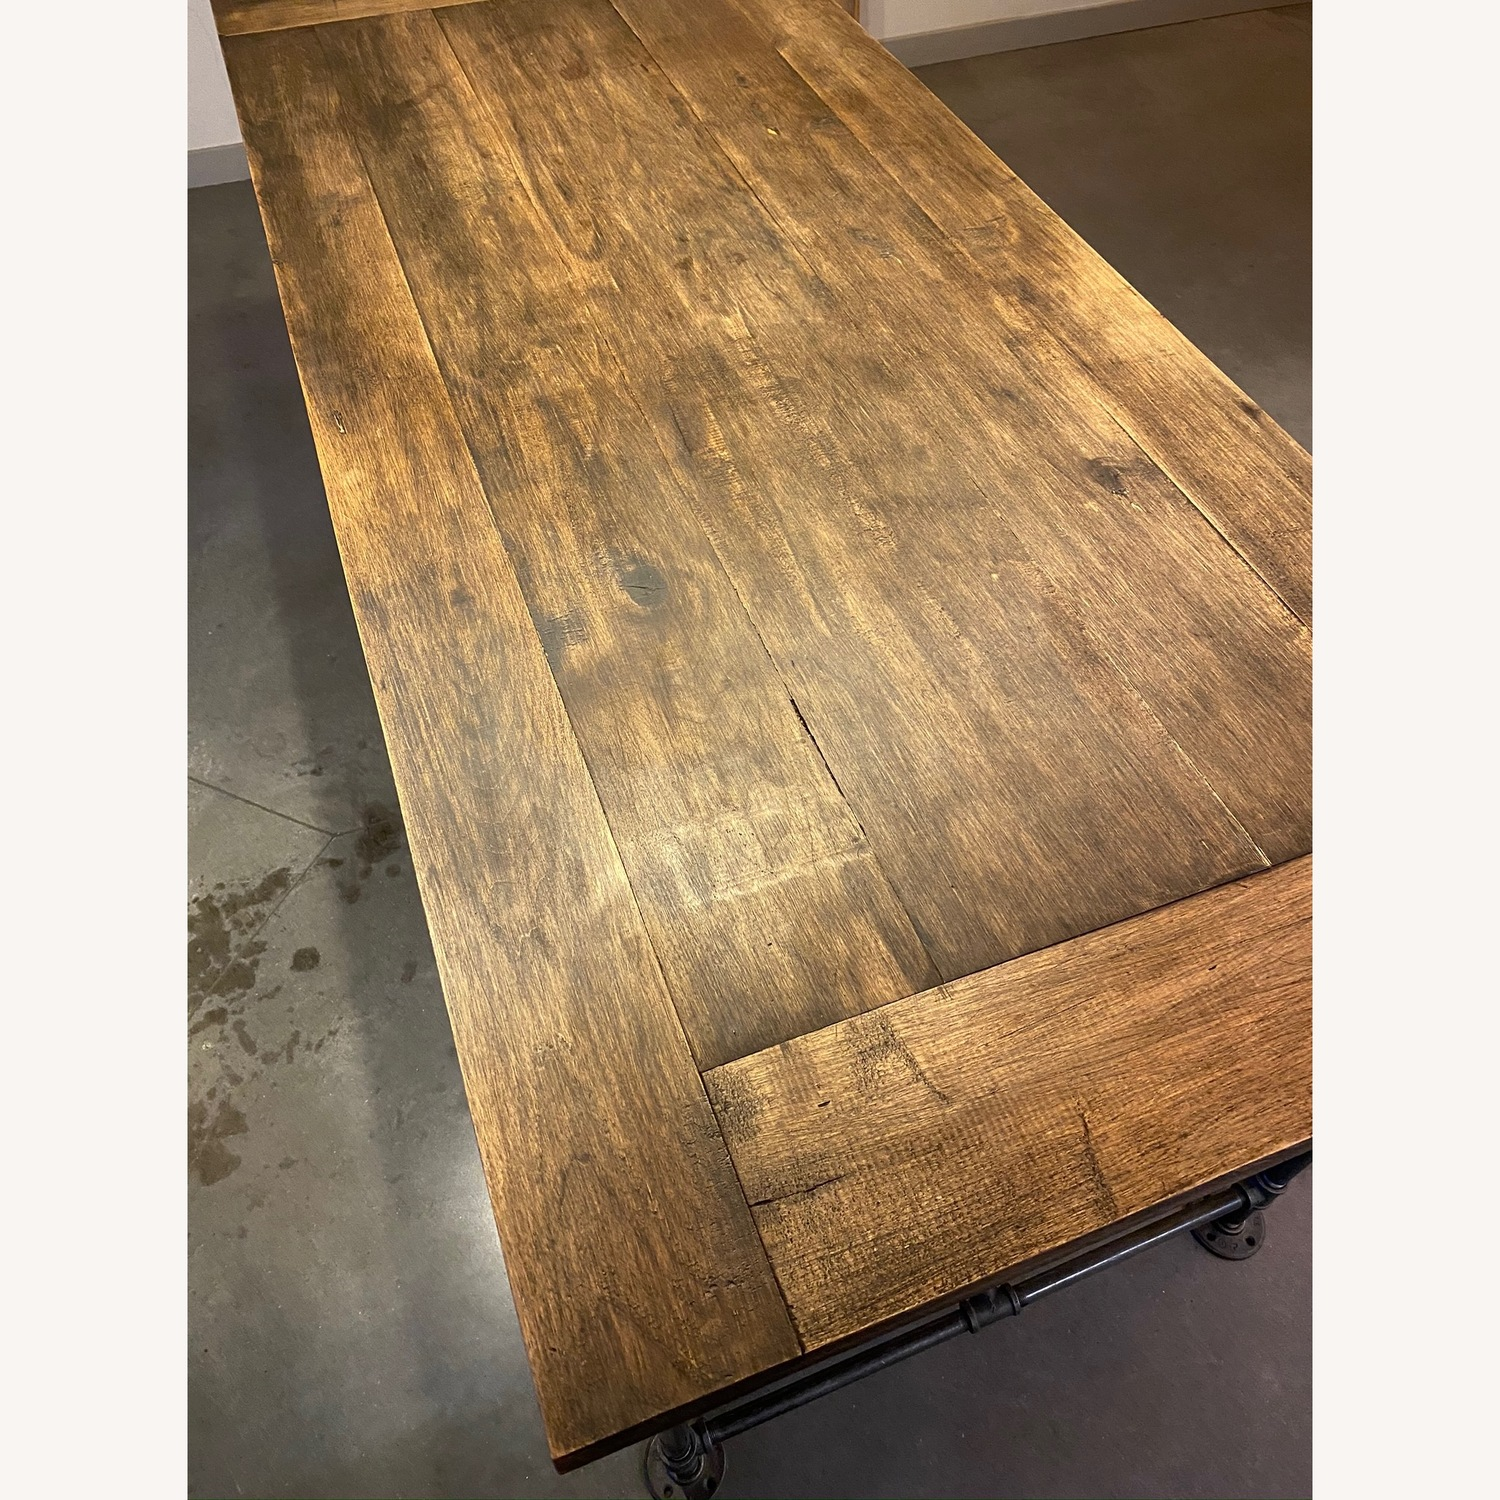 Reclaimed Wood Kitchen Table from Brooklyn Artist